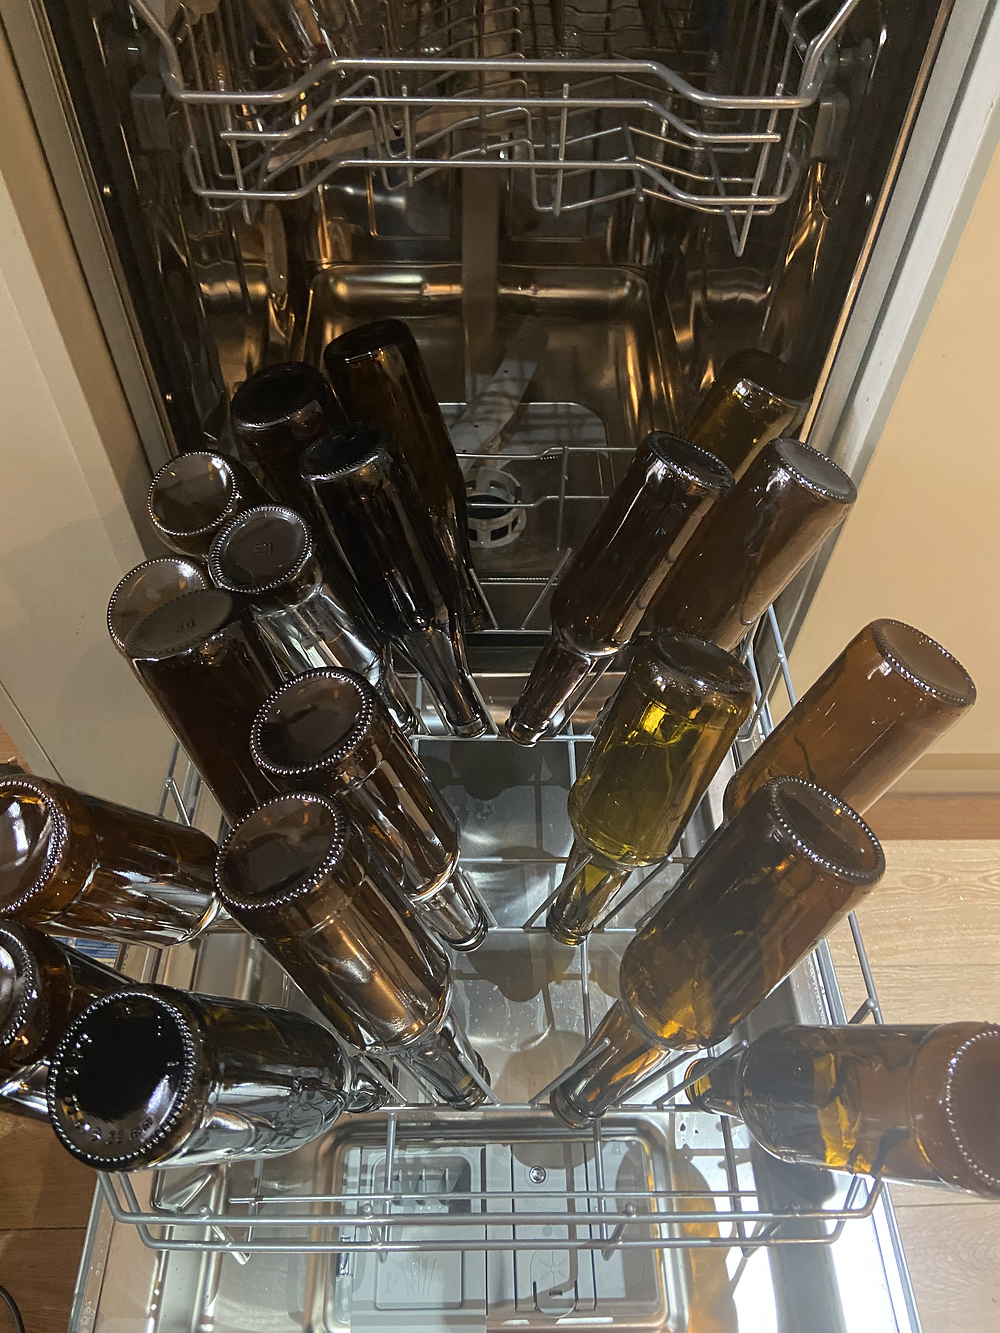 Cleaning bottles in the dishwasher